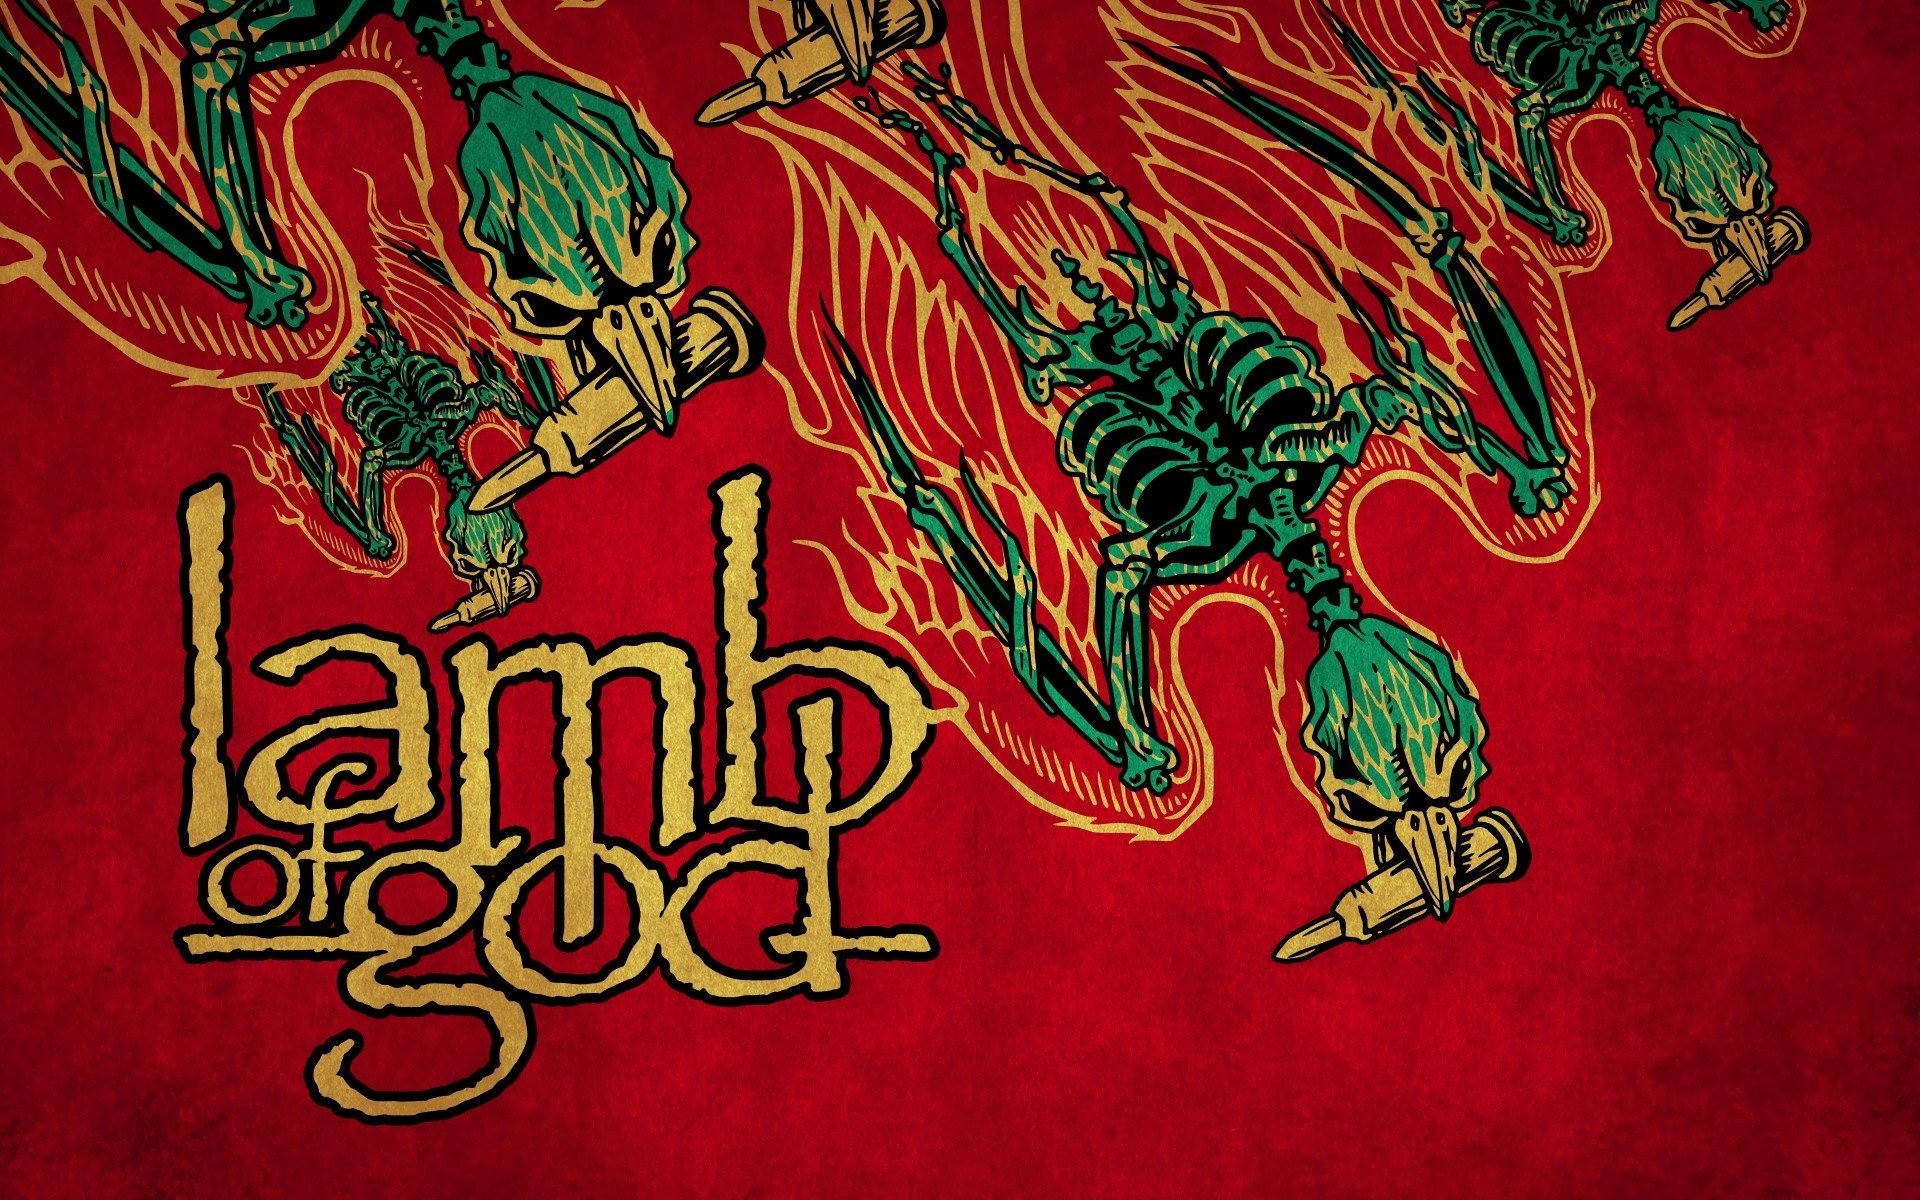 Lamb Of God Wallpaper Posted By Sarah Thompson